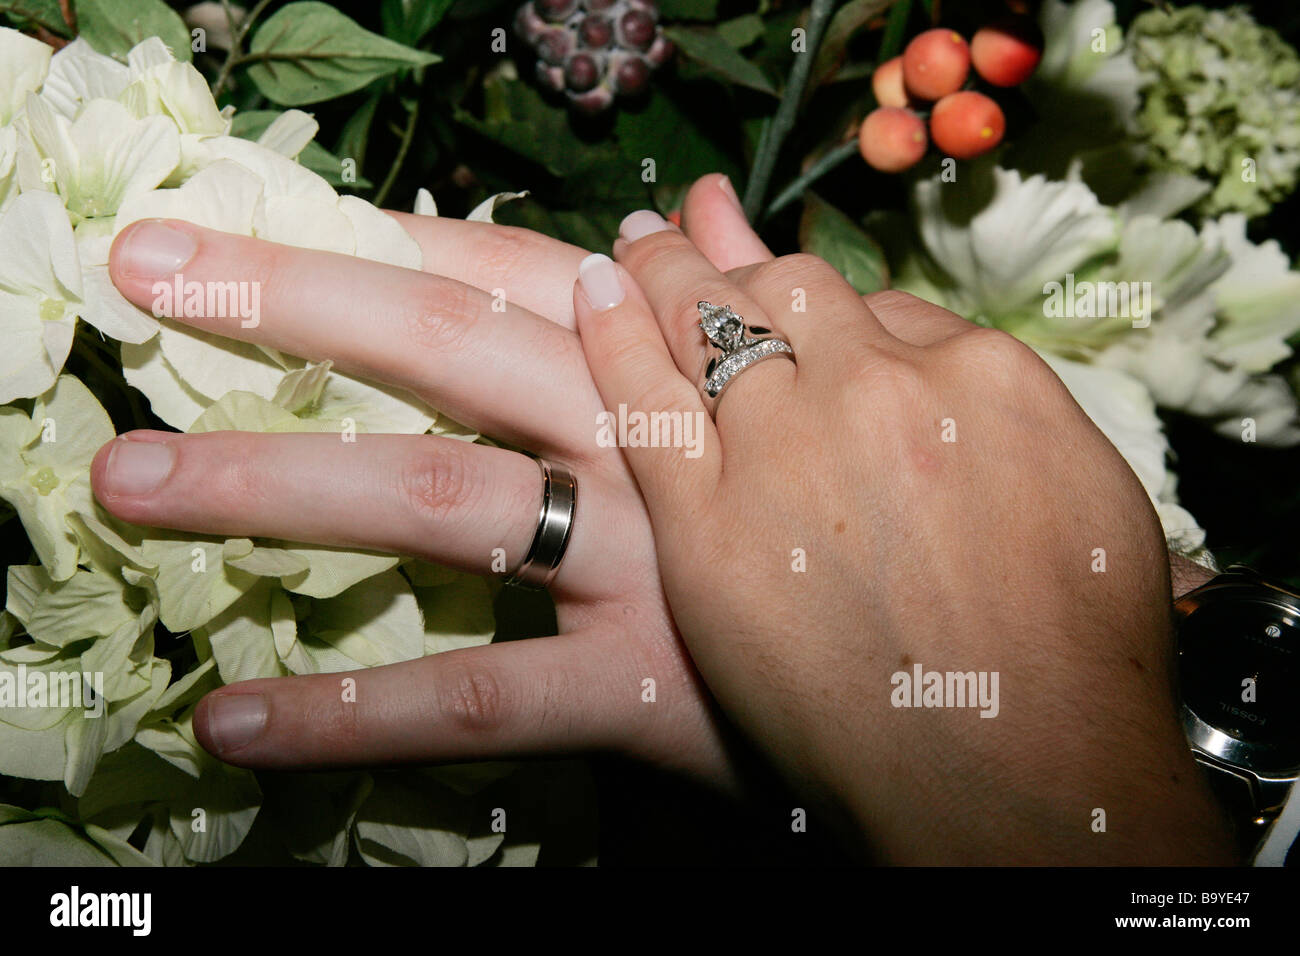 A Couples Hands Showing Their Wedding Rings Stock Photo 23346071